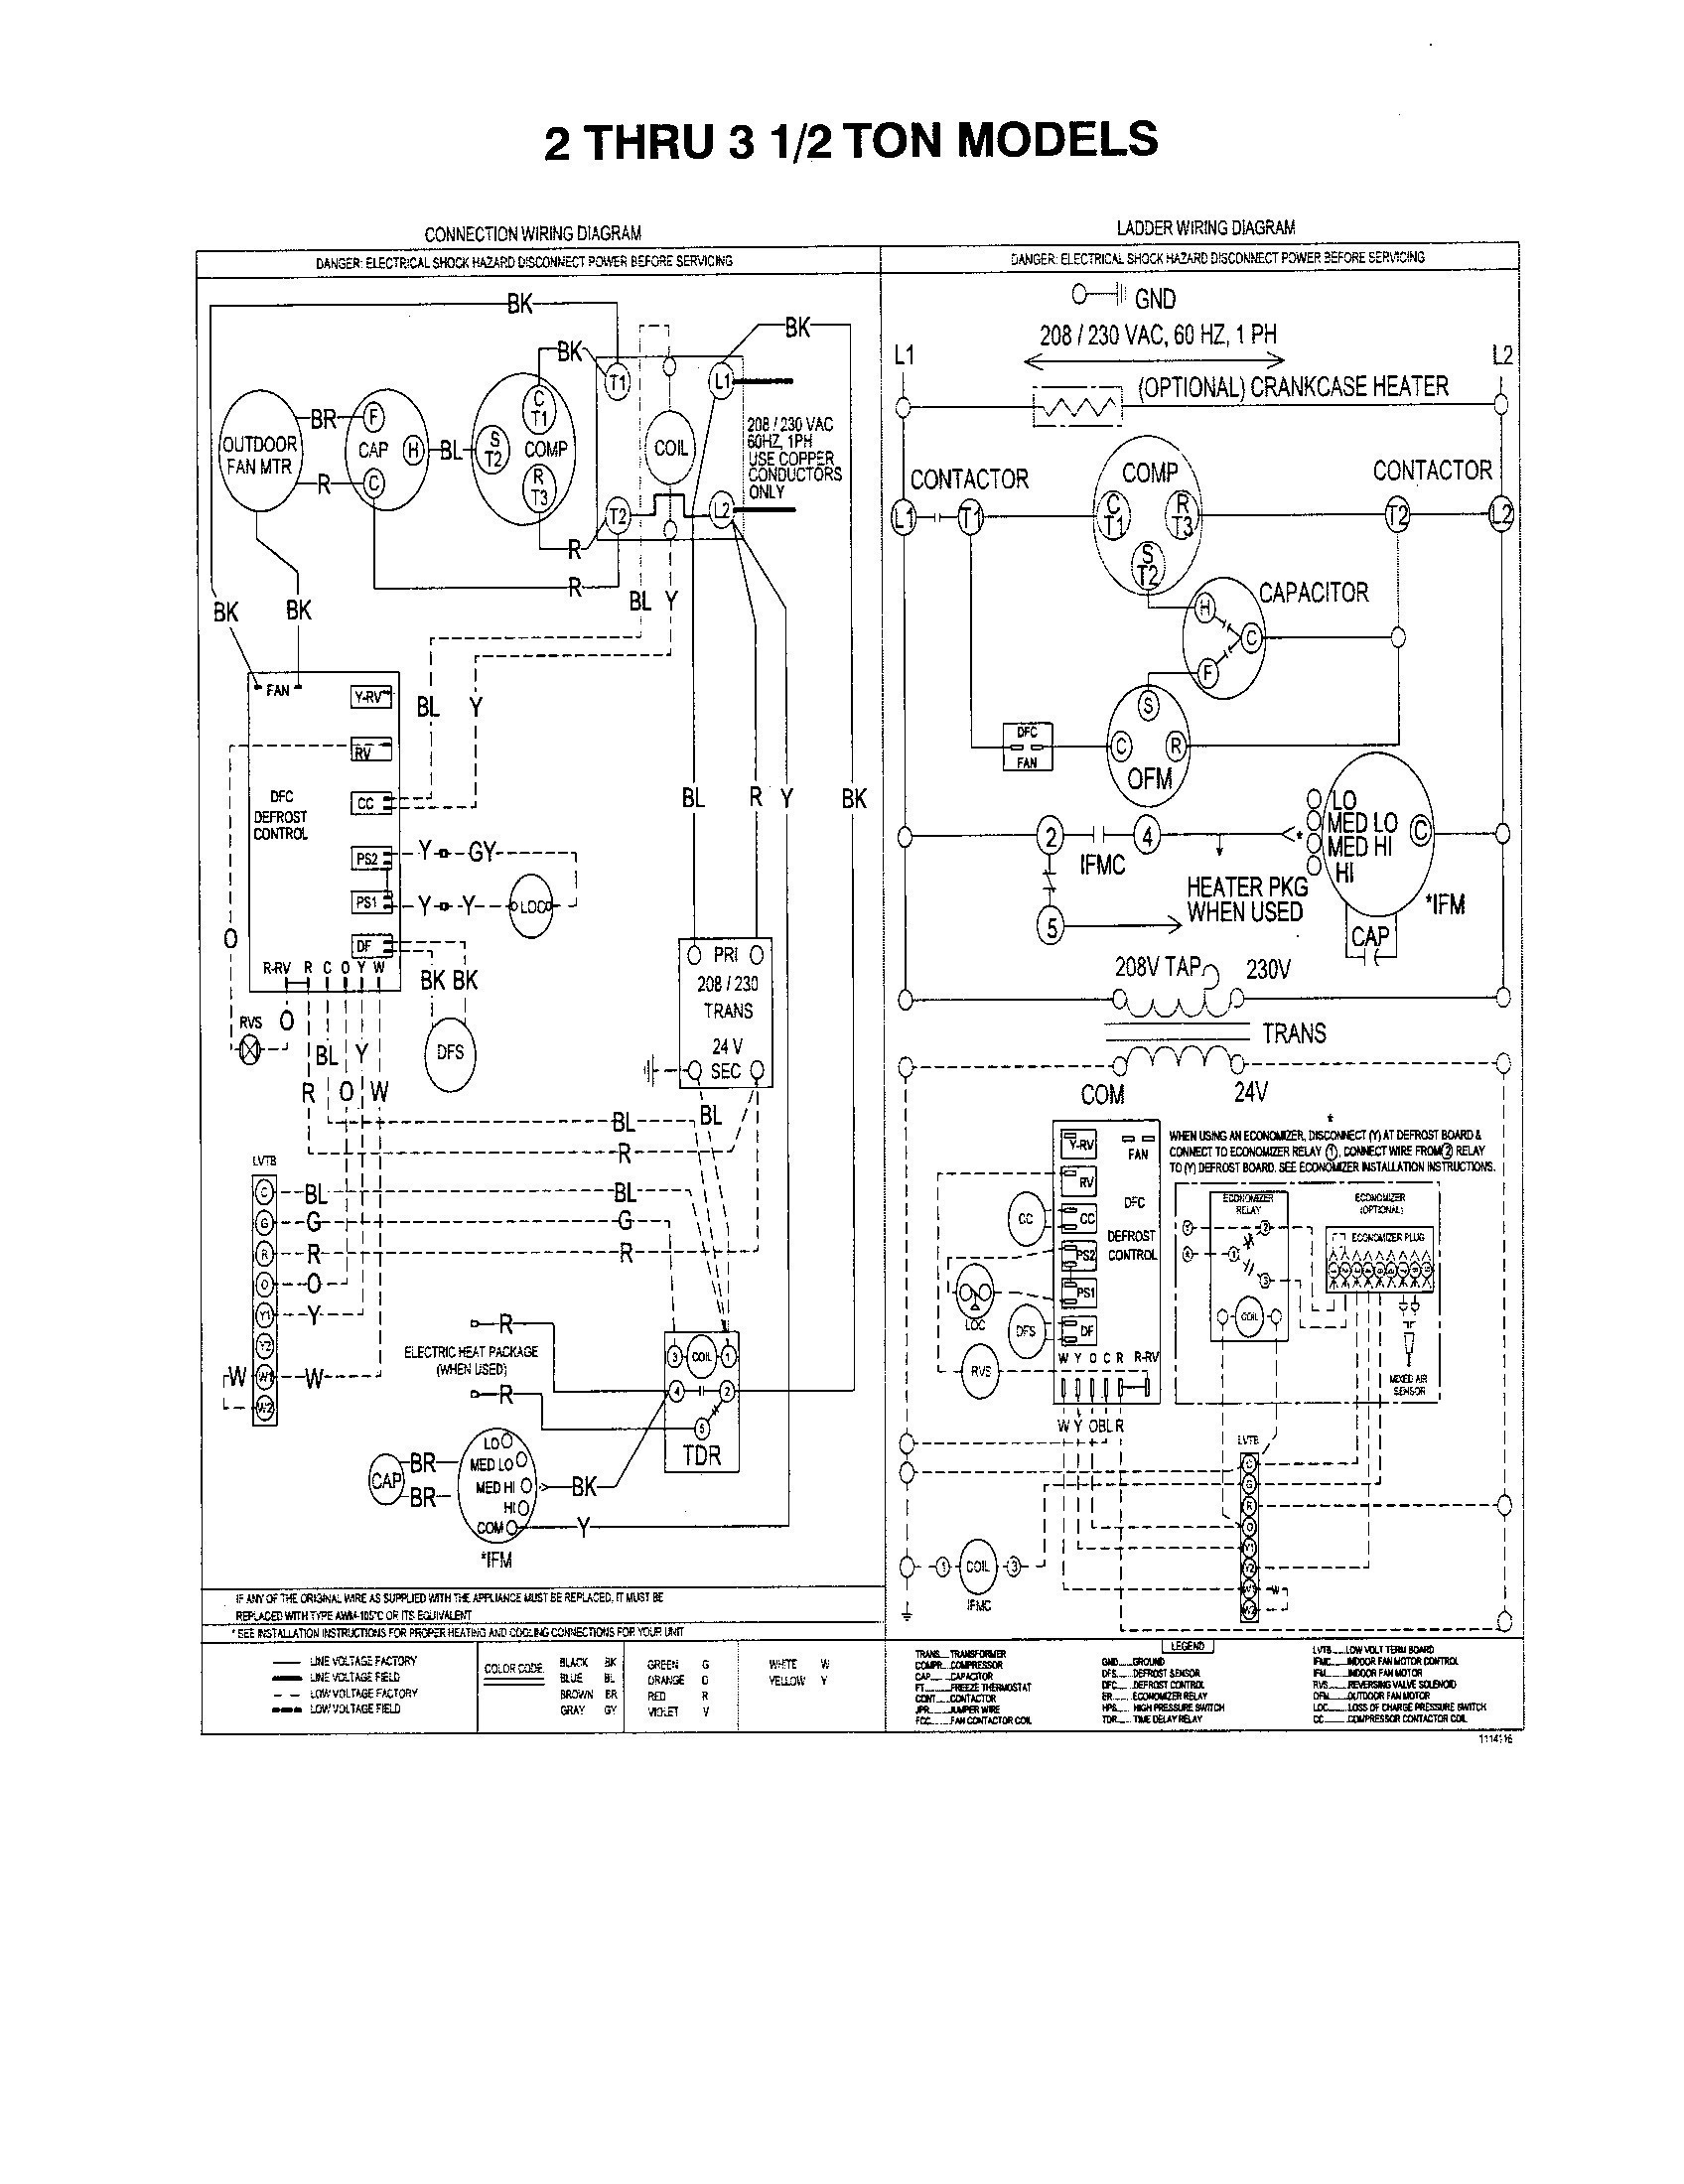 york package unit wiring diagram Download-Wiring Diagram for York Air Conditioner Save Wiring Diagram Ac York Valid Wiring Diagram Package Ac 8-t